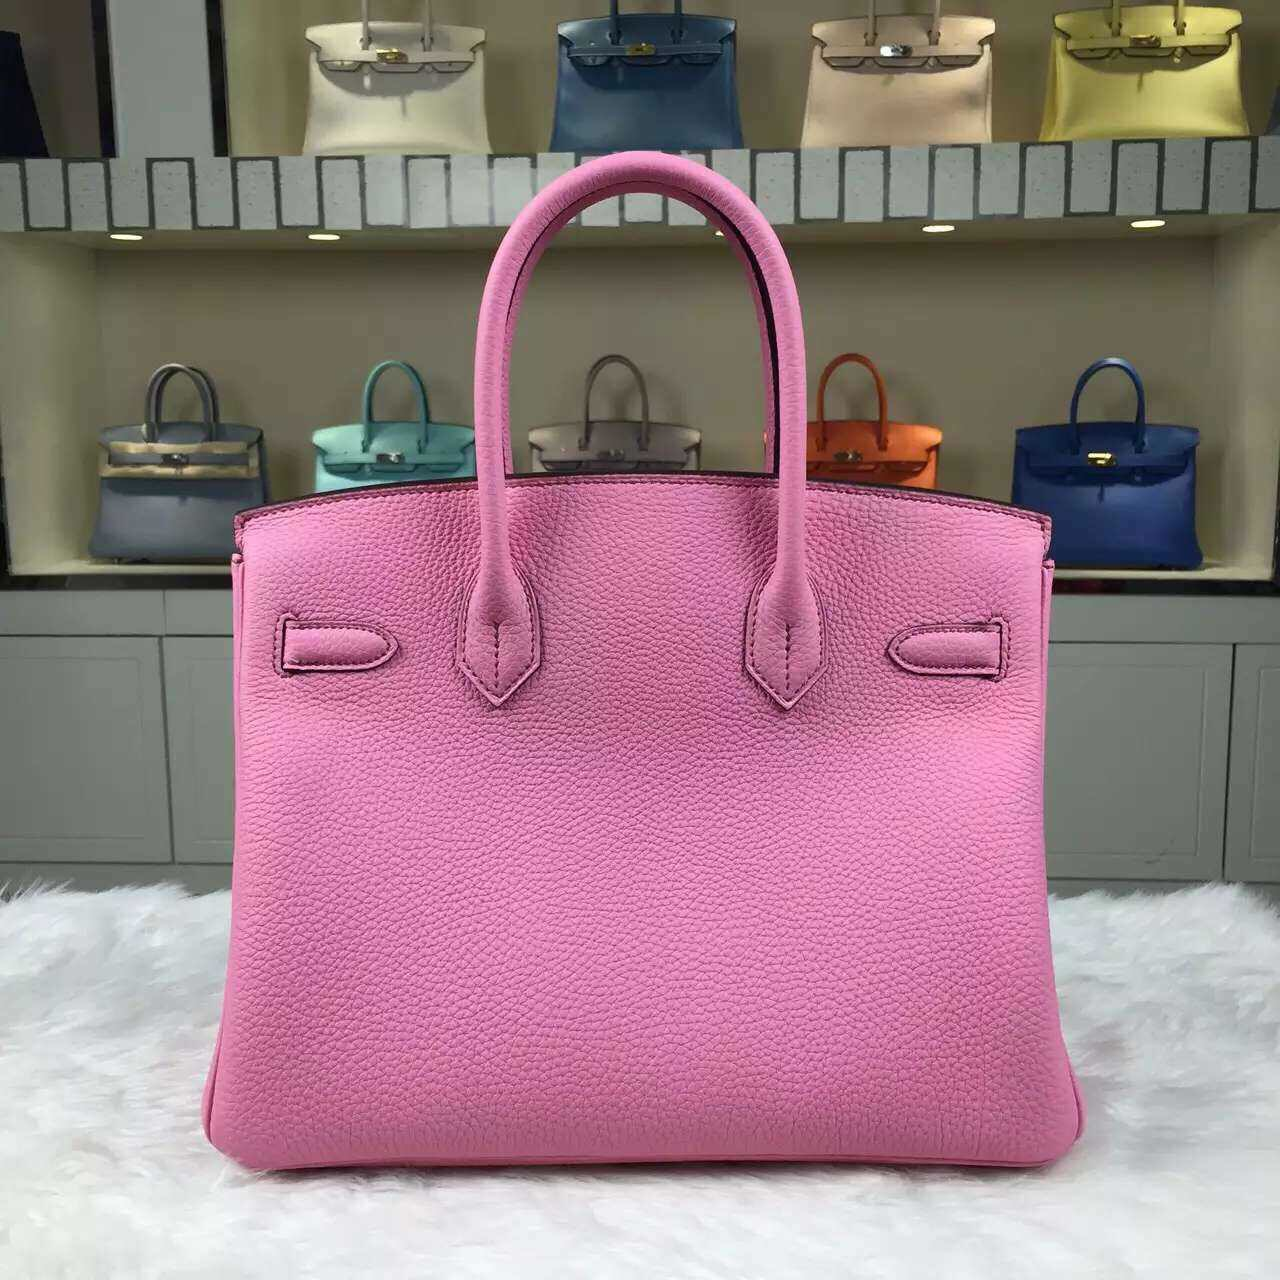 On Sale Hermes Togo Calfskin Leather Birkin Bag 30CM 5P Rose Sakura